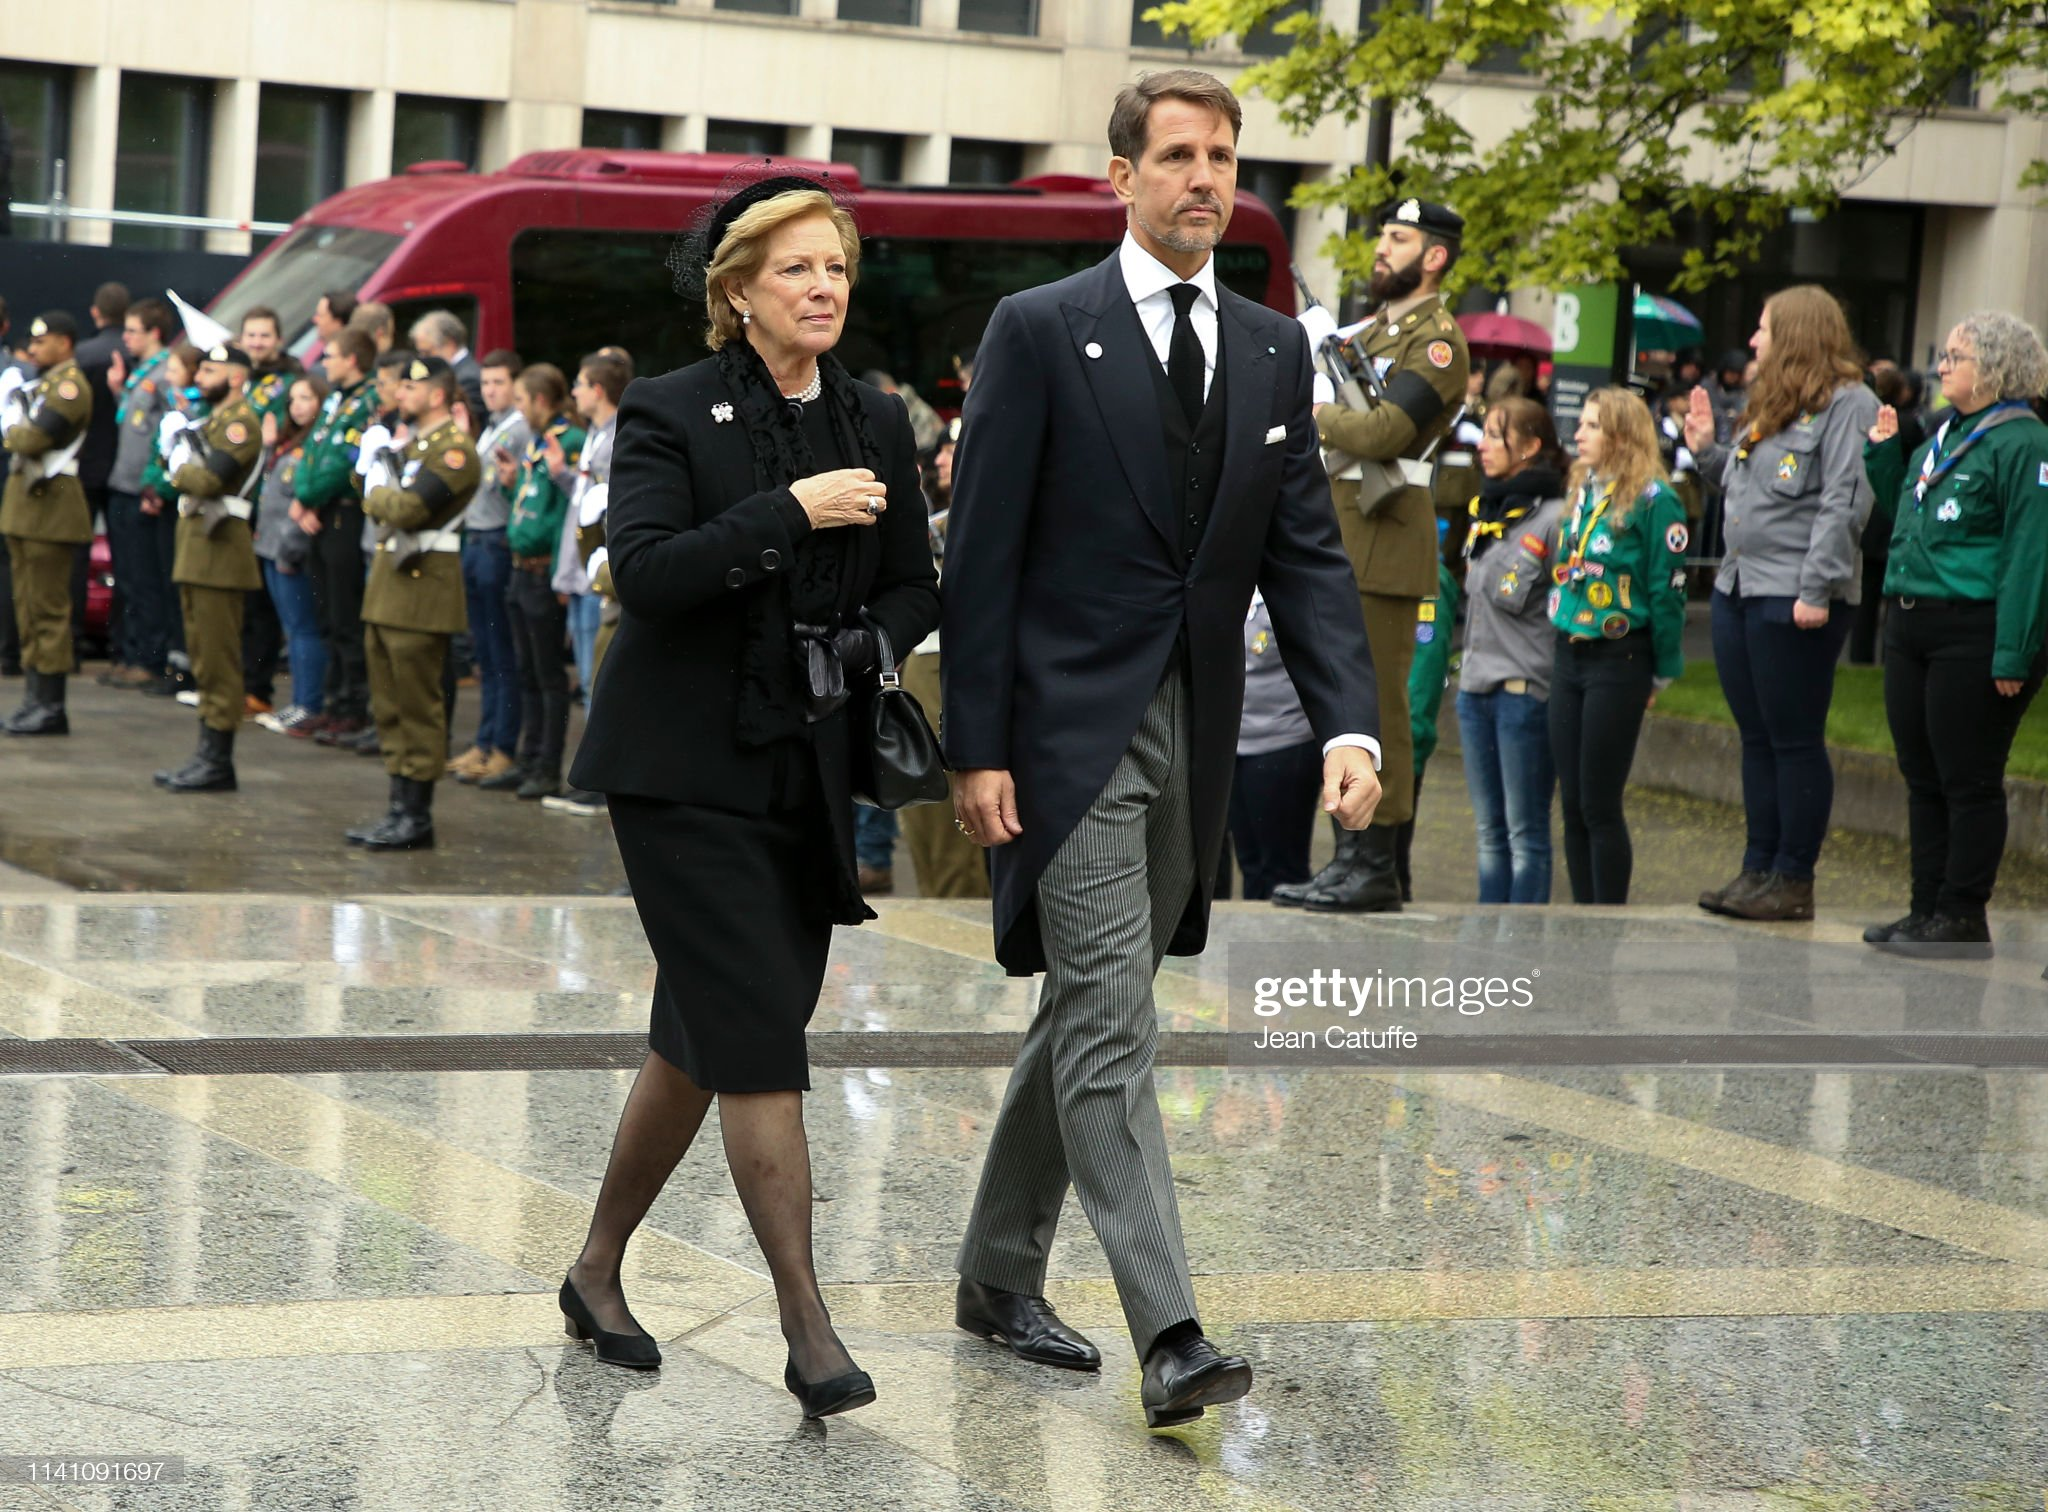 Похороны Великого Герцога Жана https://media.gettyimages.com/photos/queen-annemarie-of-greece-and-pavlos-crown-prince-of-greece-arrive-at-picture-id1141091697?s=2048x2048